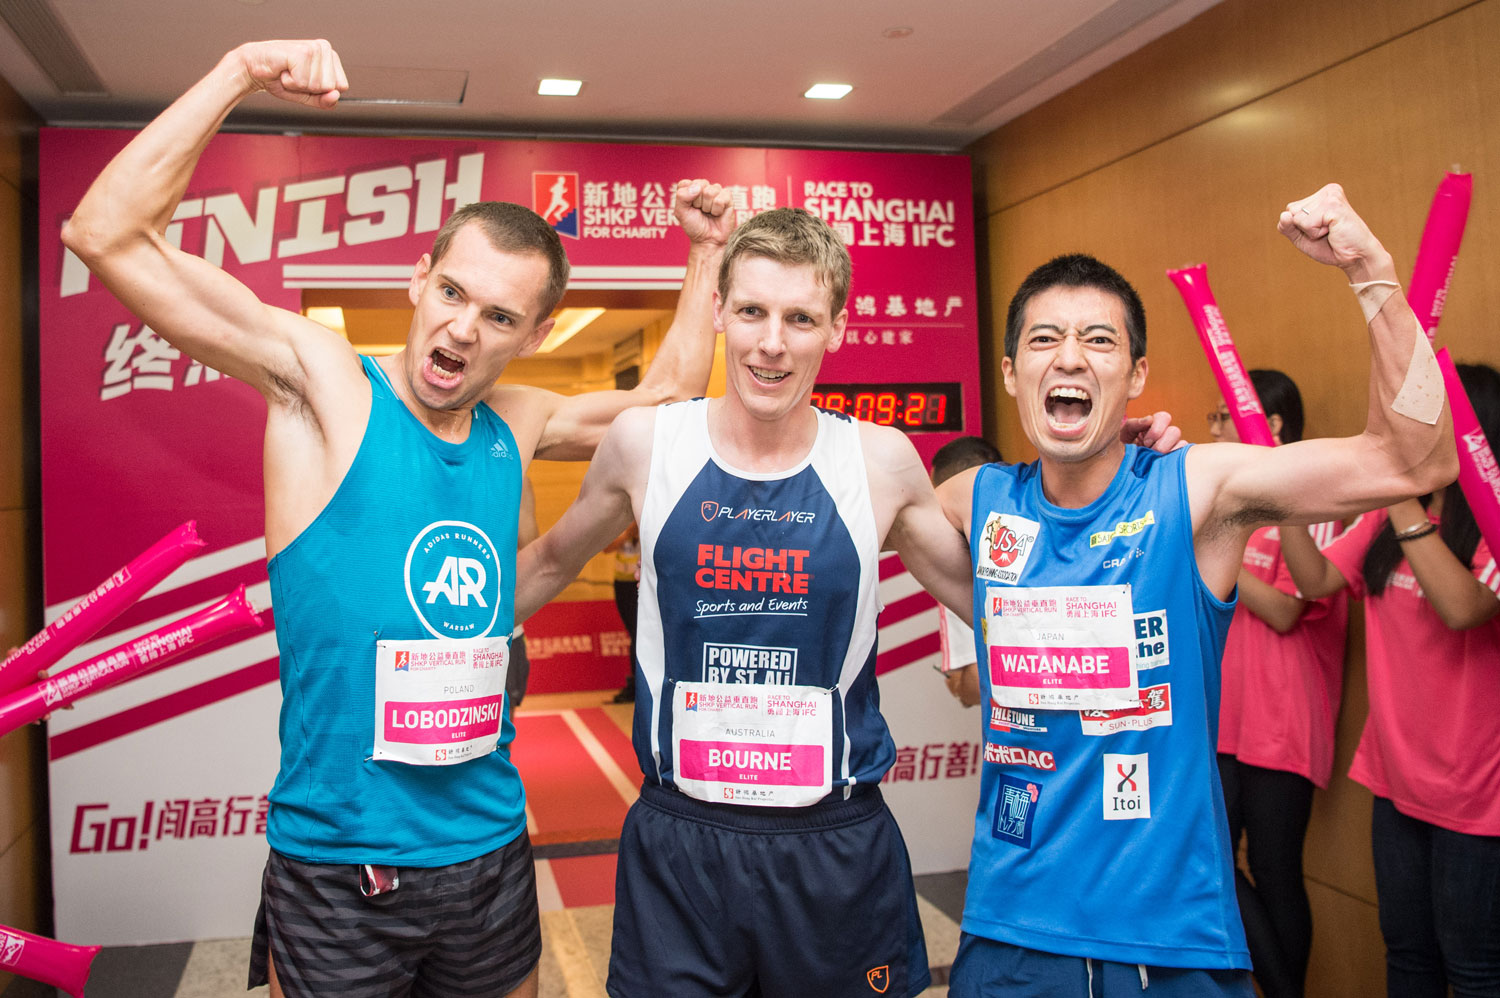 Piotr Lobodzinski, Mark Bourne and Ryoji Watanabe podium at Shanghai. ©Sporting Republic